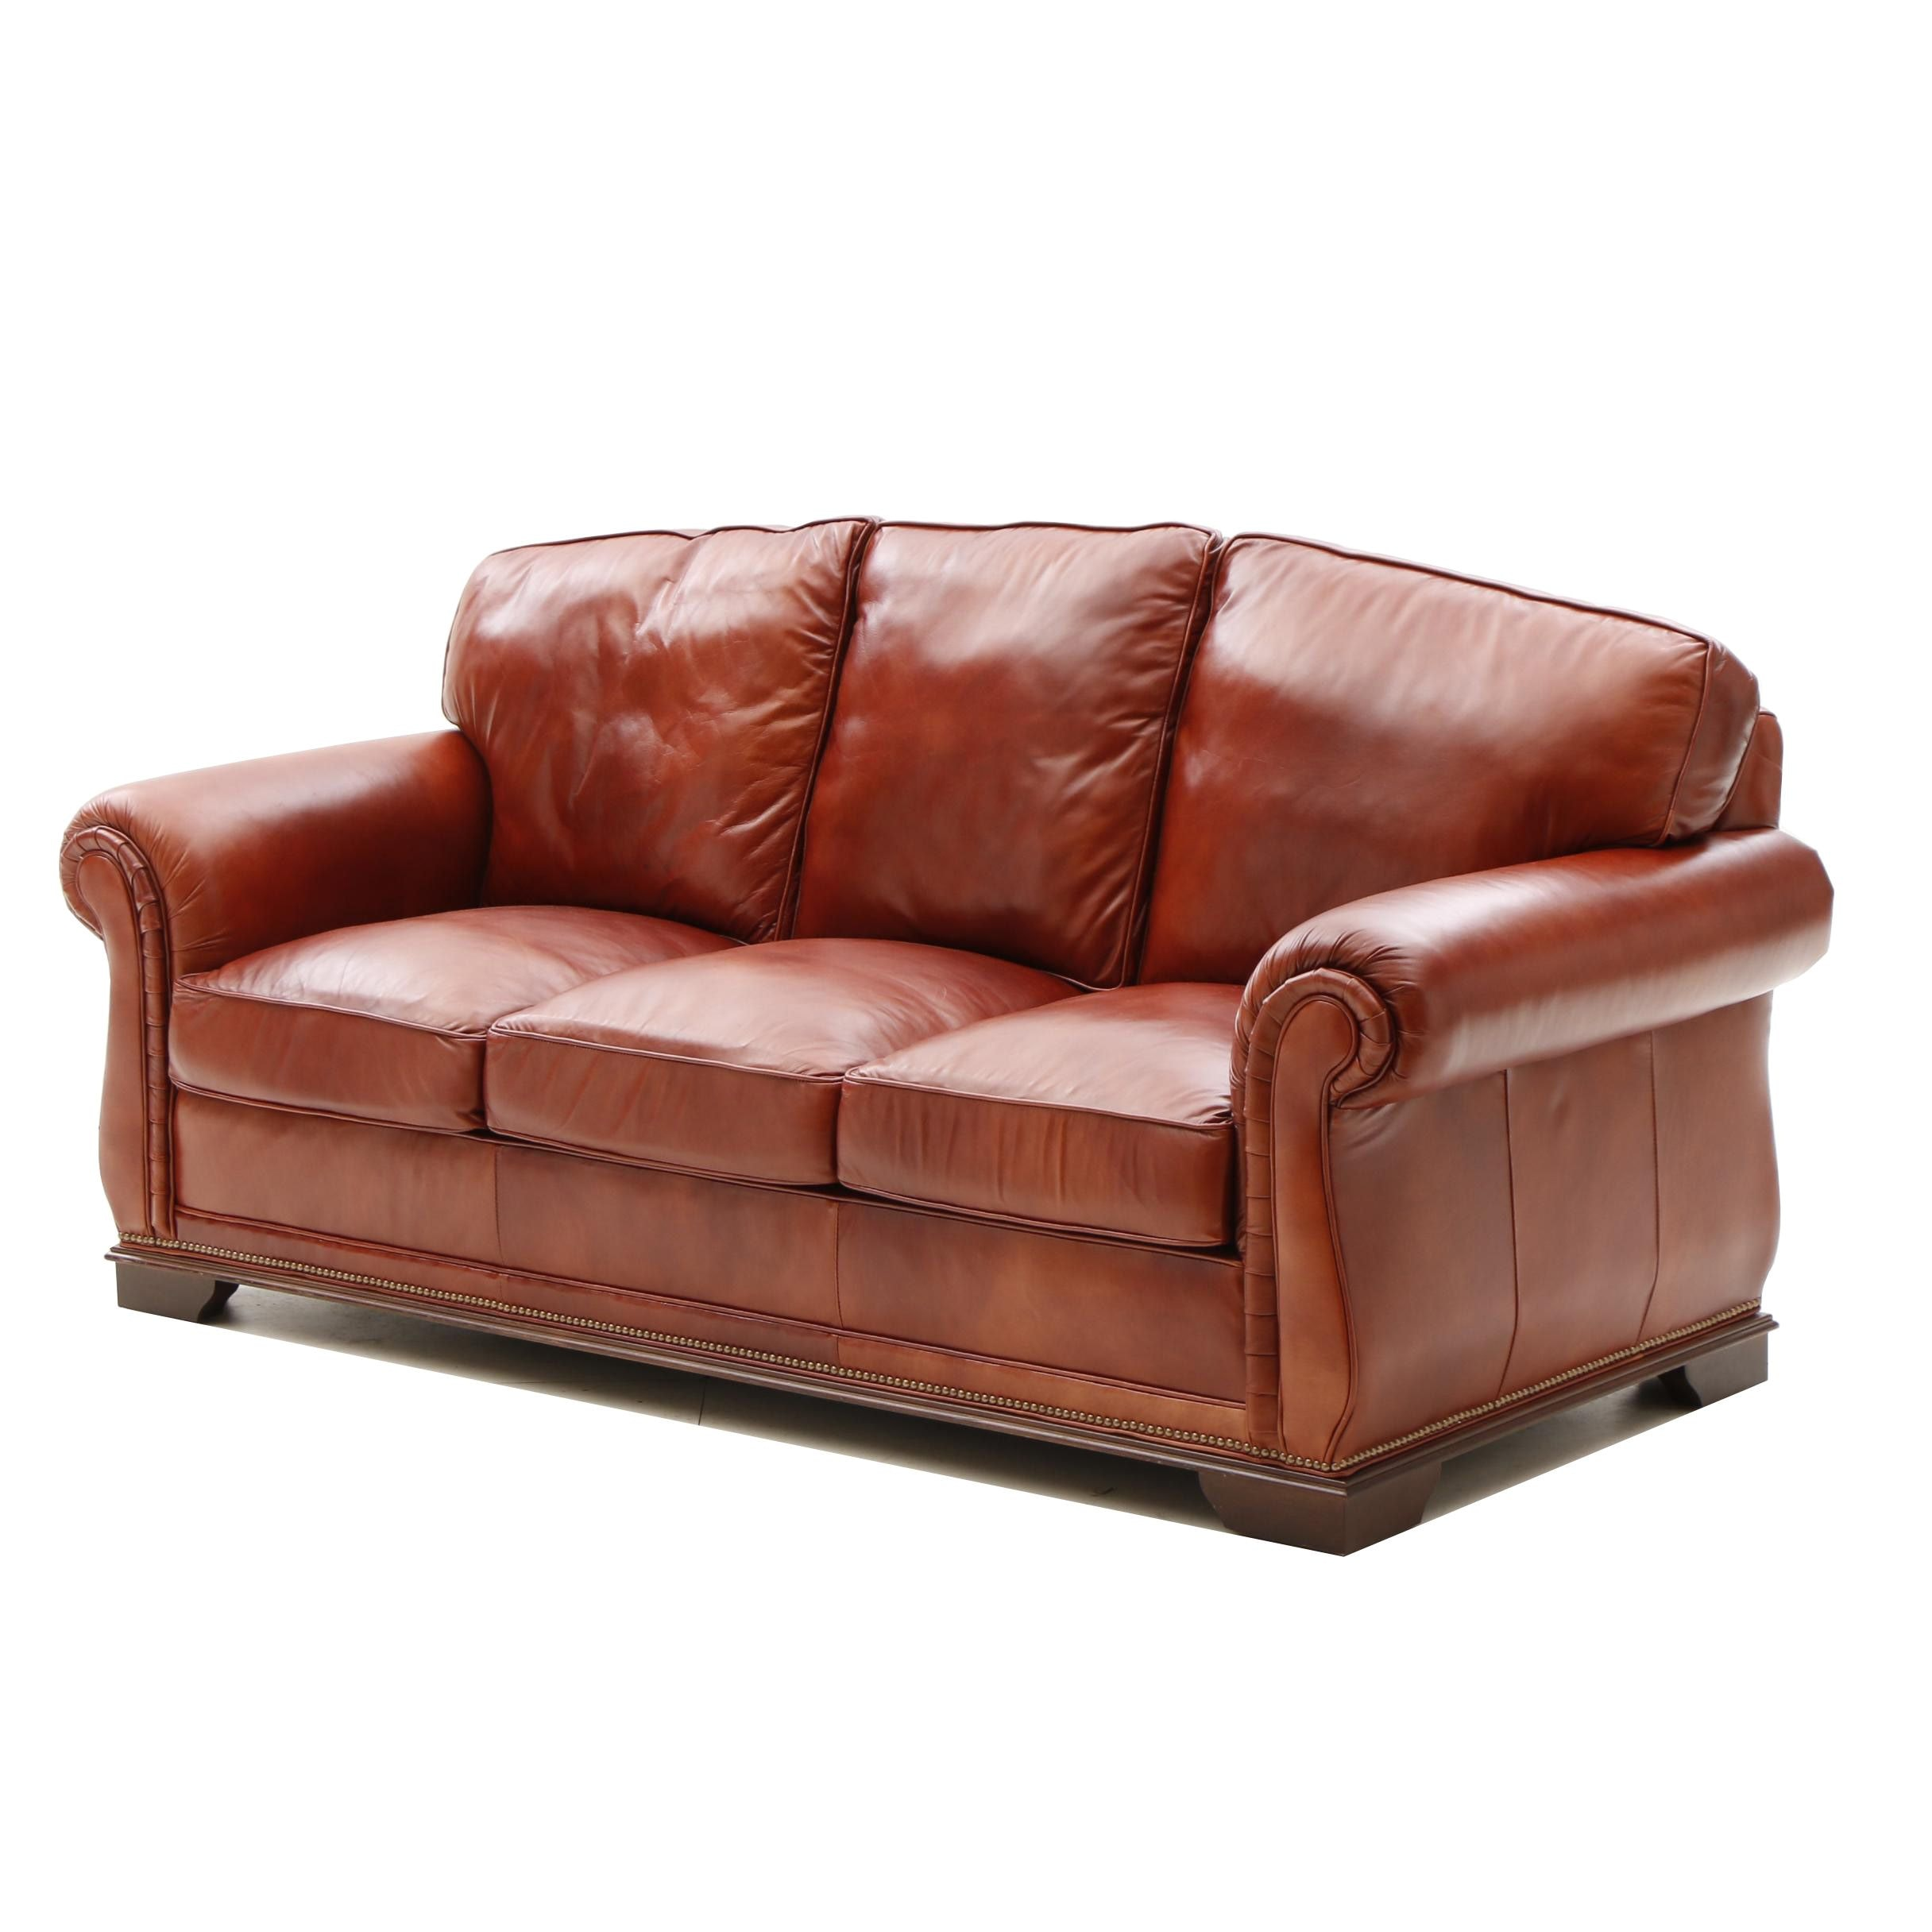 Contemporary Leather Sofa by Classic Leather Inc.